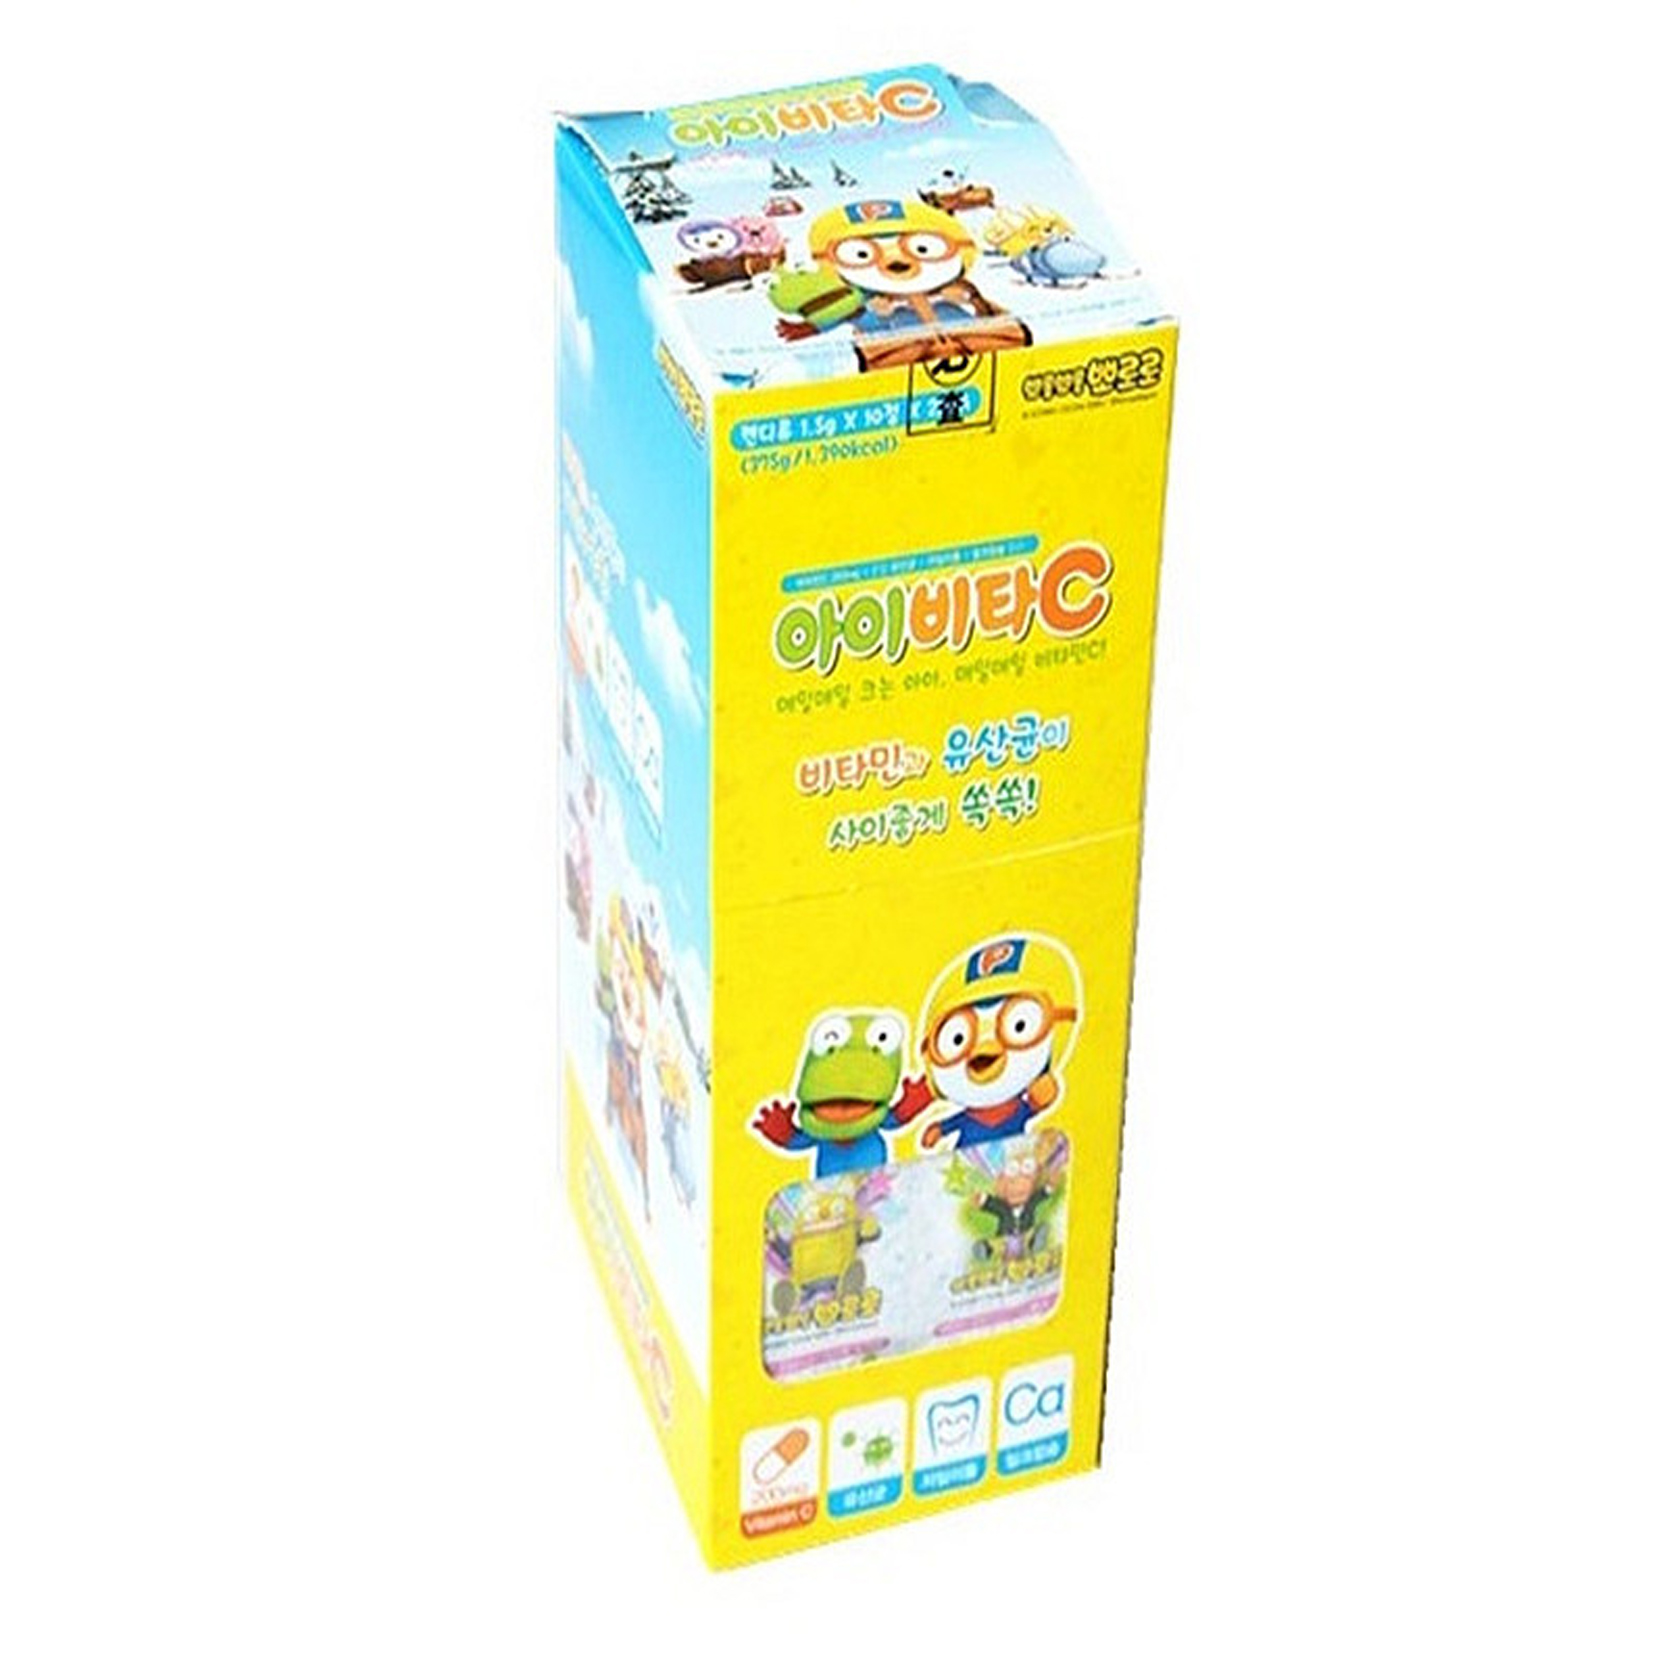 Pororo C Plus Box of 250 Chewable Tablet 500 BOXES